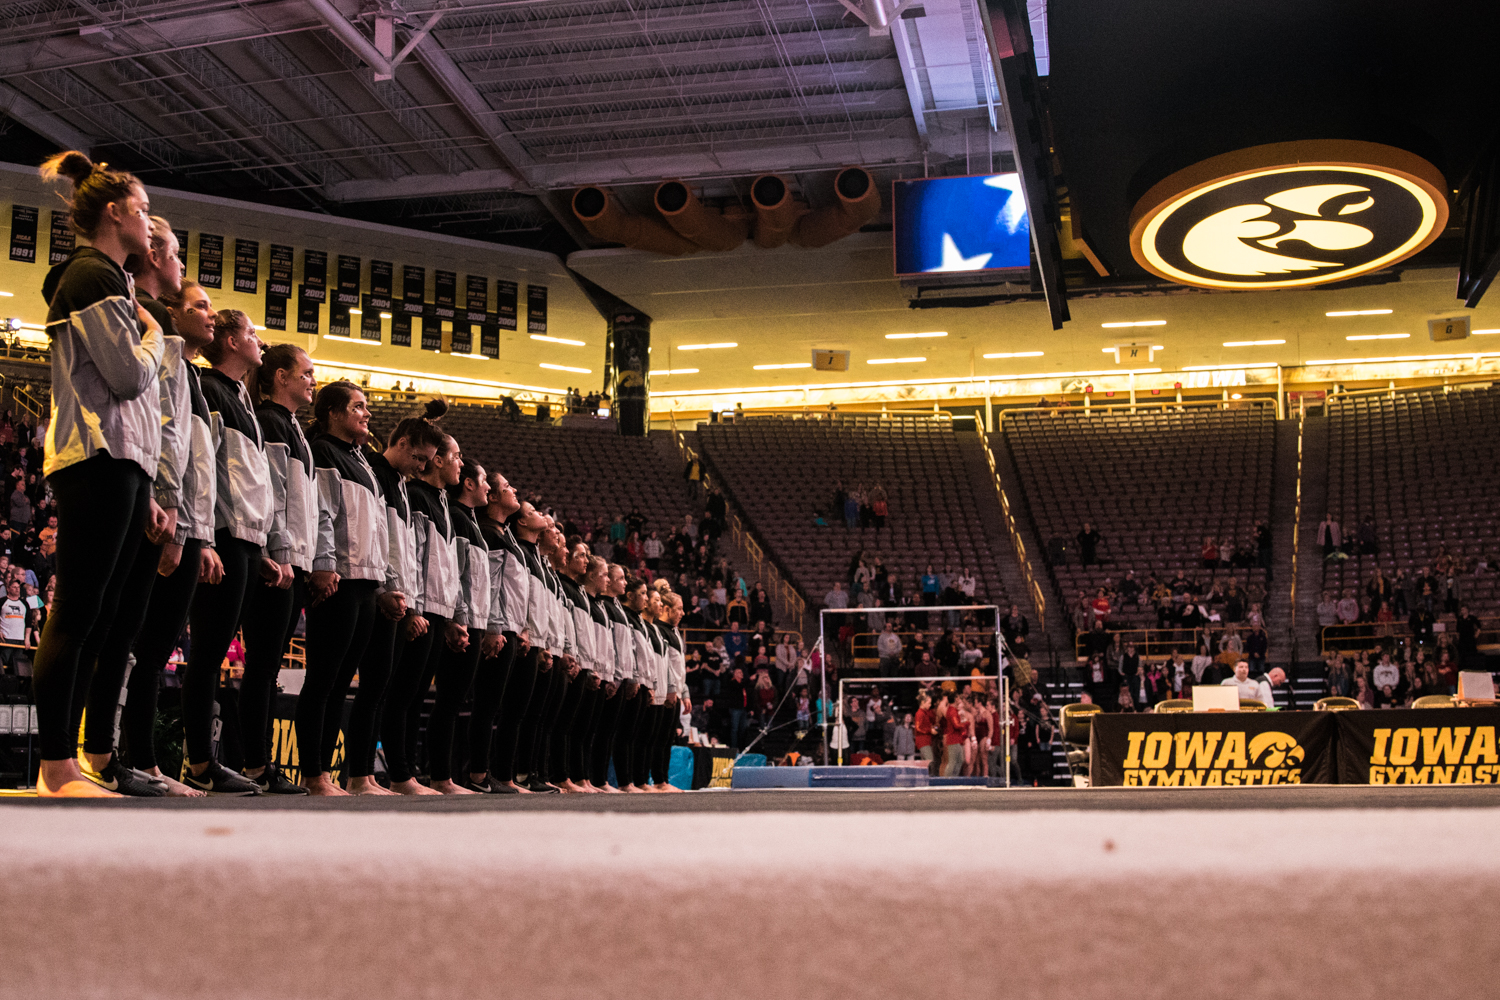 Iowa+gymnasts+stand+for+the+nationan+anthem+during+a+women%27s+gymnastics+meet+between+Iowa+and+Iowa+State+at+Carver-Hawkeye+Arena+on+Friday%2C+March+1%2C+2019.+The+Hawkeyes%2C+celebrating+senior+night%2C+fell+to+the+Cyclones%2C+196.275-196.250.